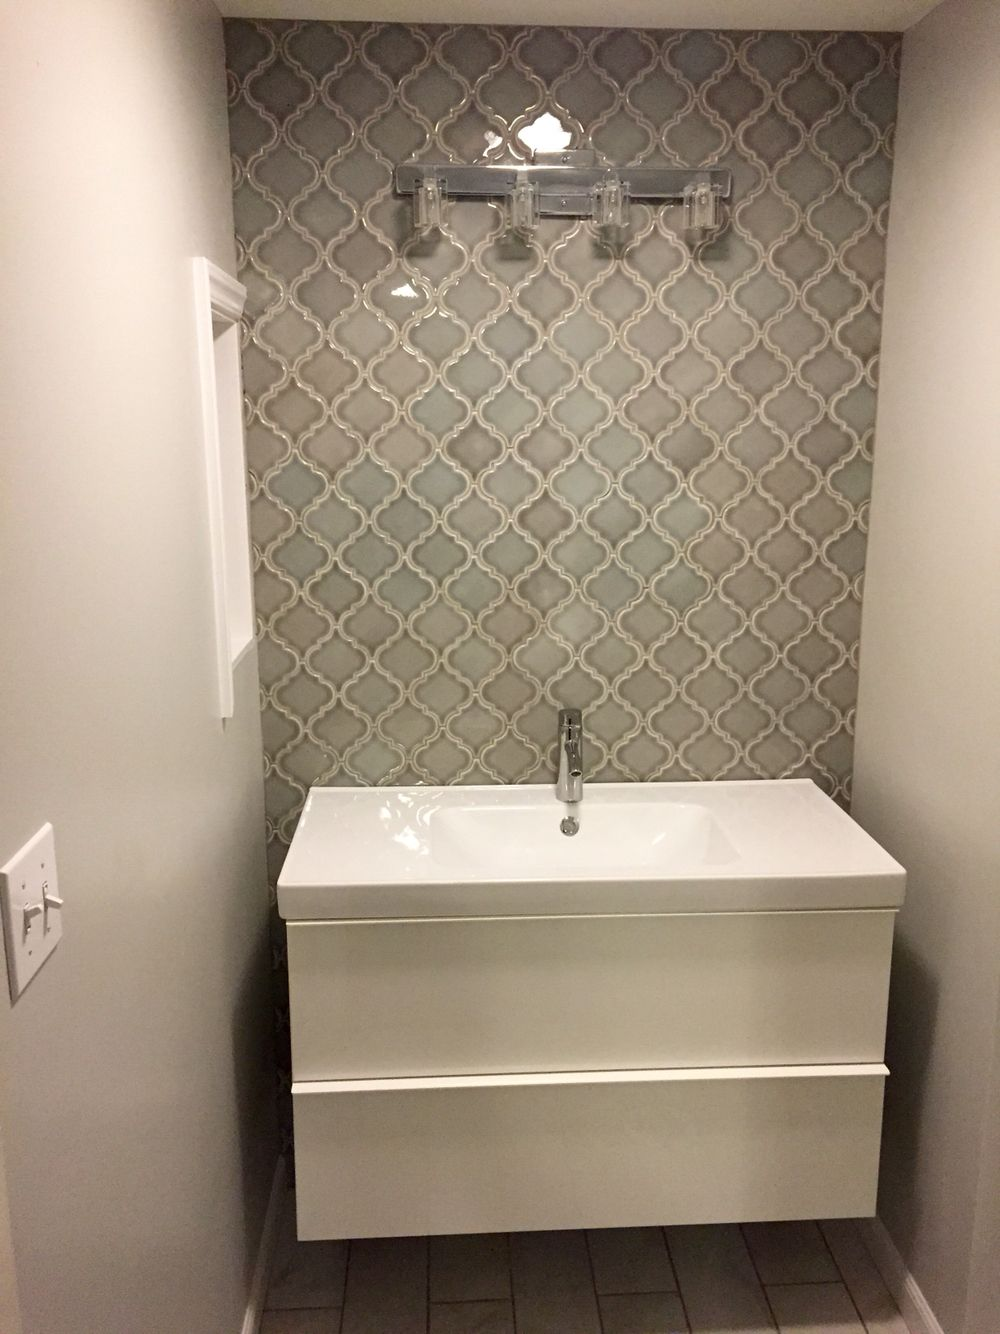 Home Depot Dove gray Arabesque tile bathroom wall. | Home ...